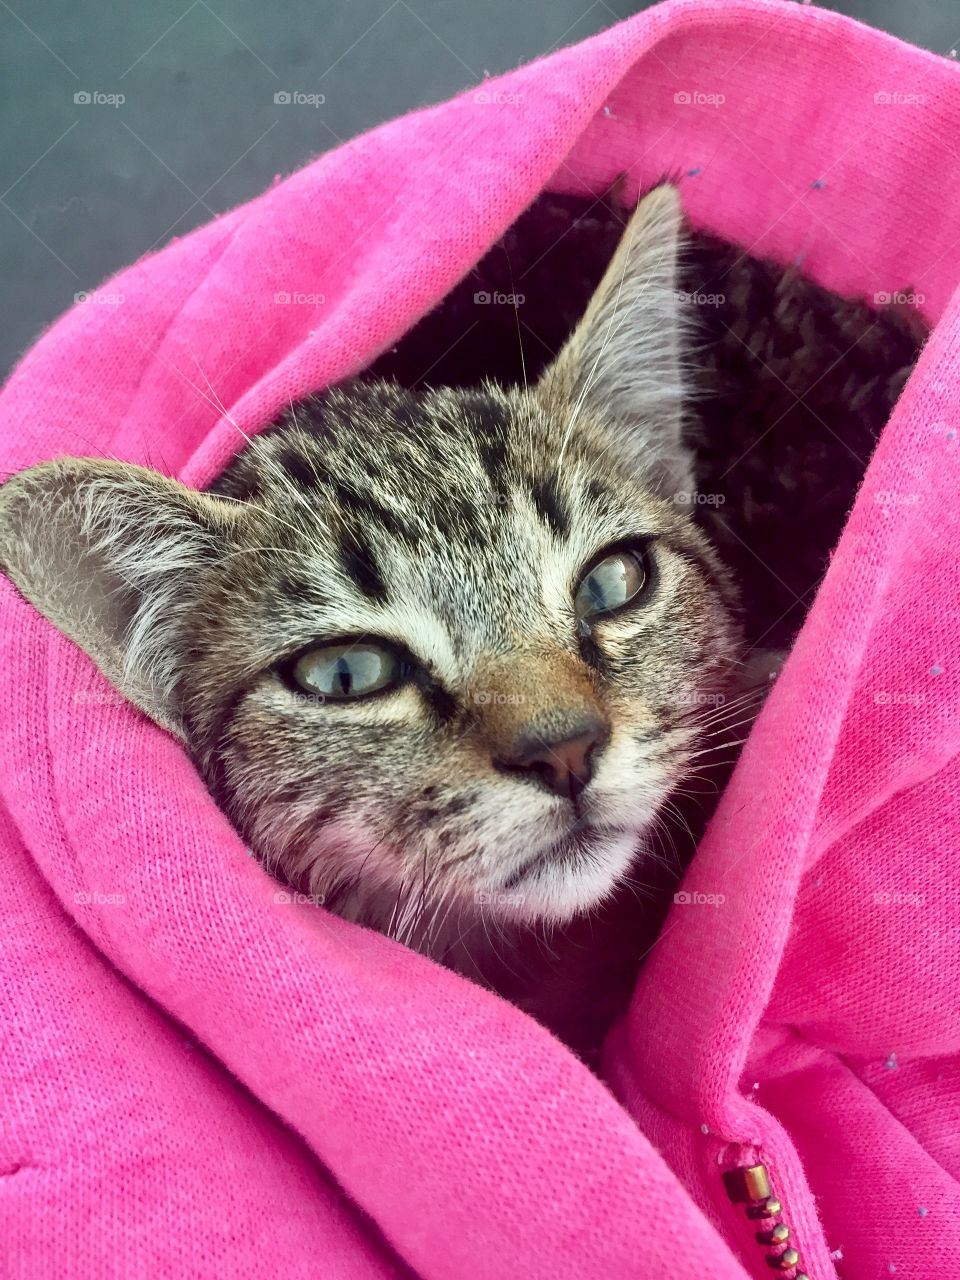 Close-up of a cat in pink jacket